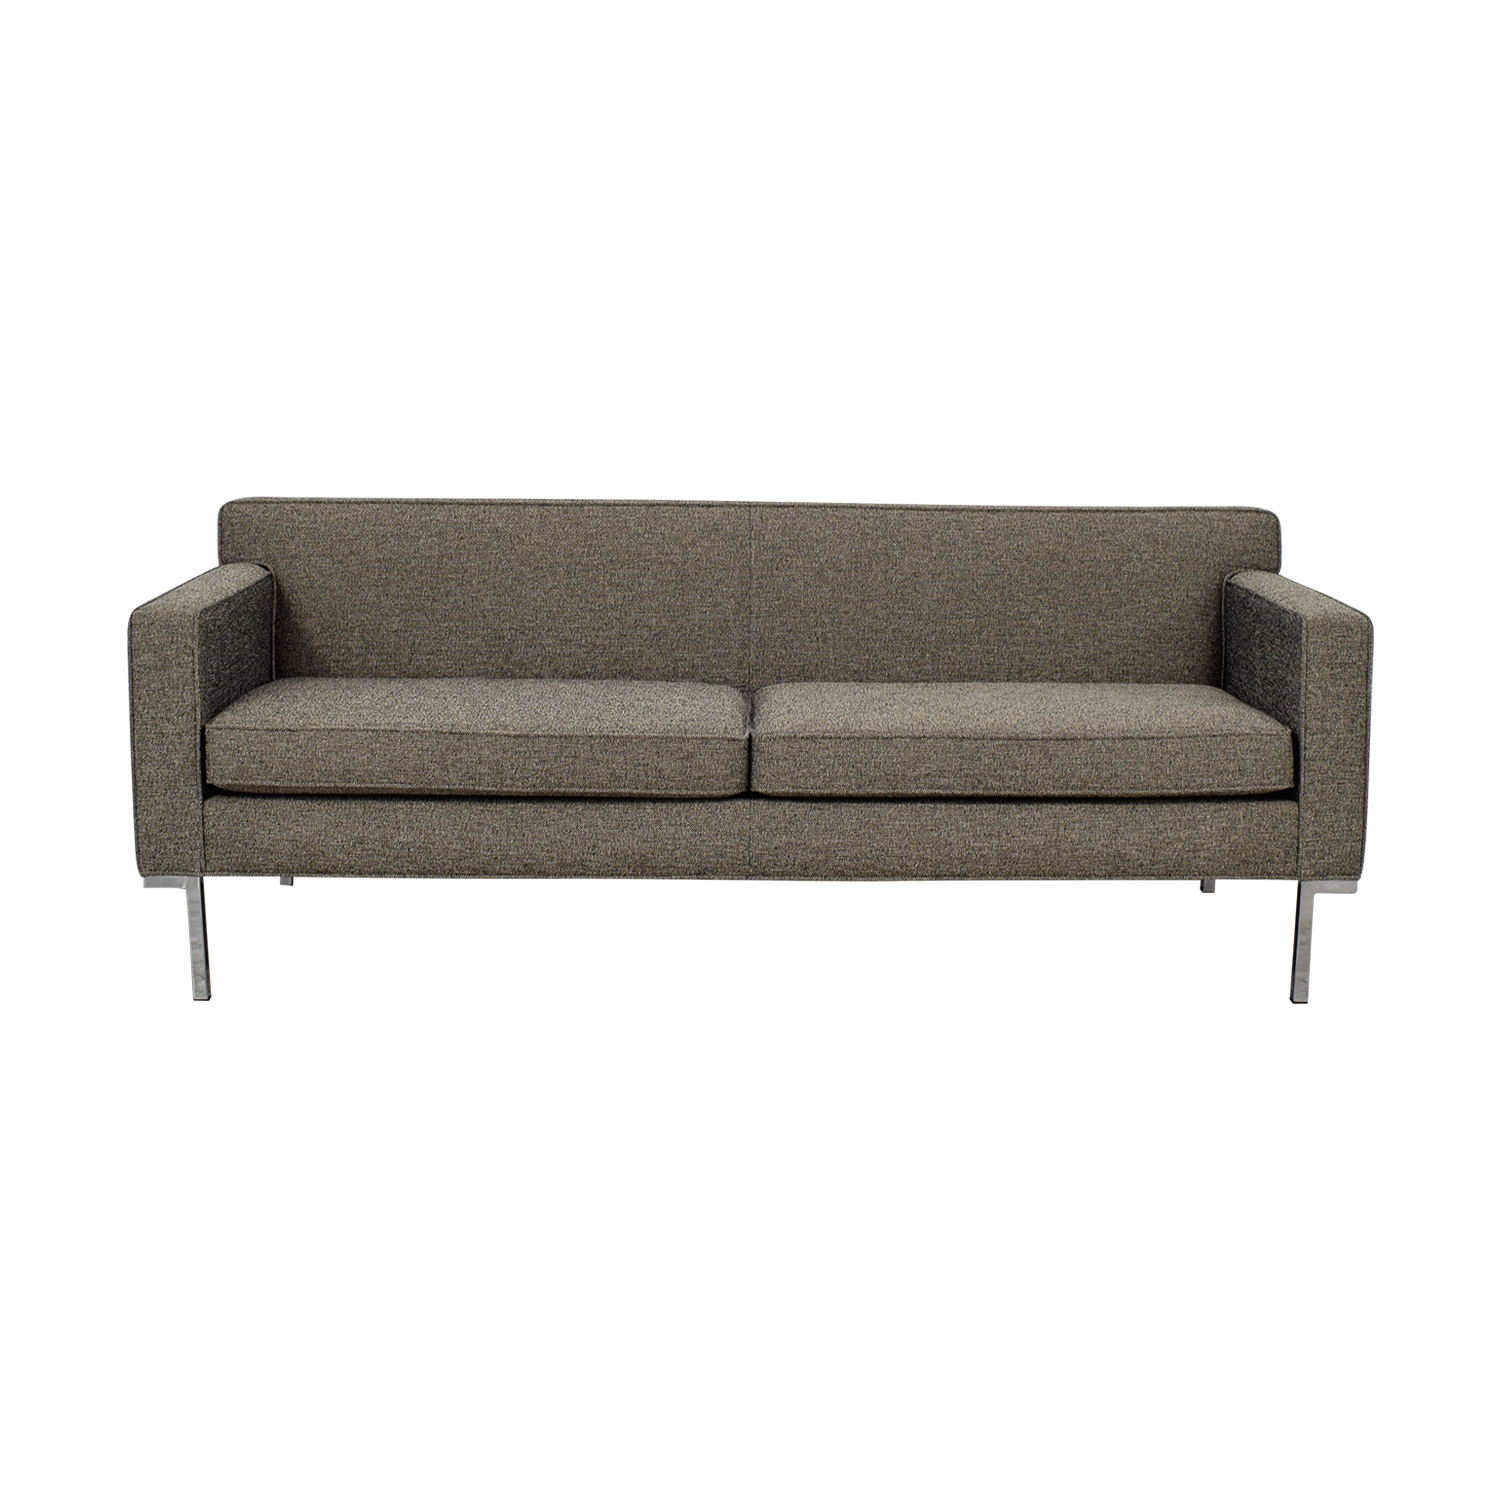 Design Within Reach Design Within Reach Theatre Sofa price